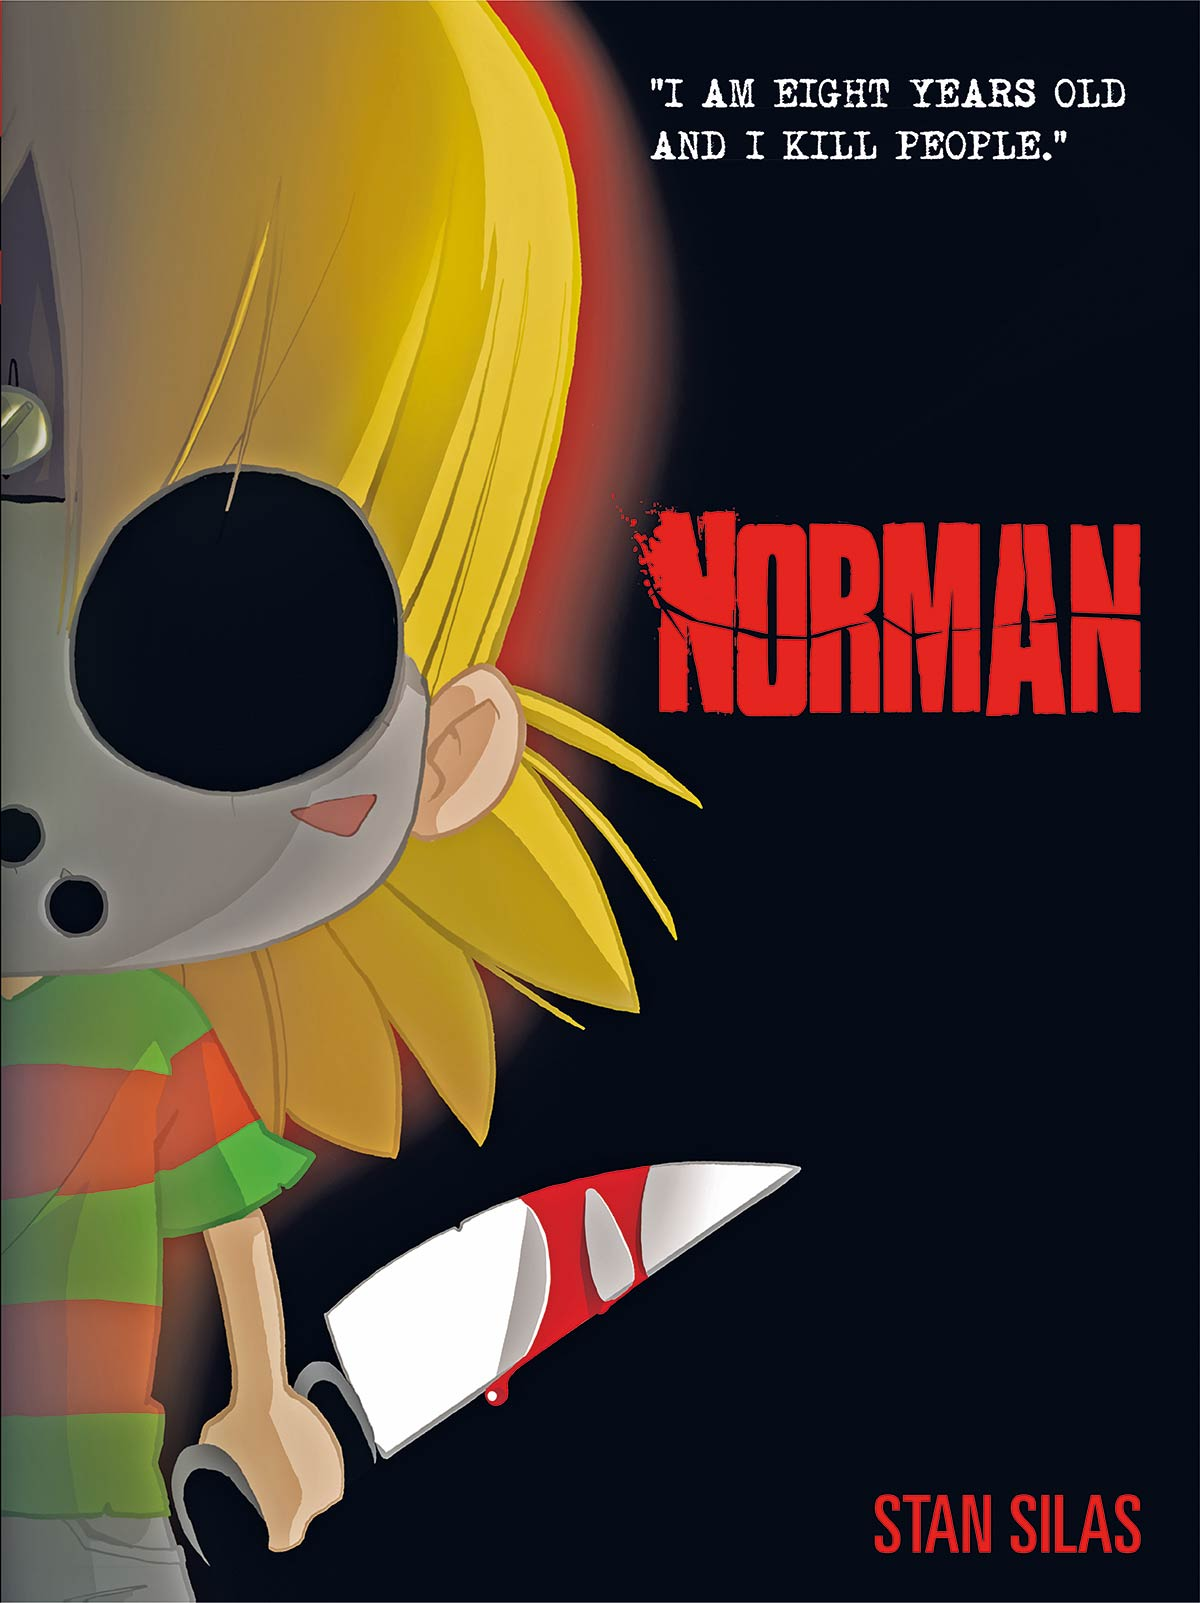 NORMAN VOL. 1 - Norman Says Happy Halloween! See All His Teaser Posters from Titan Comics!